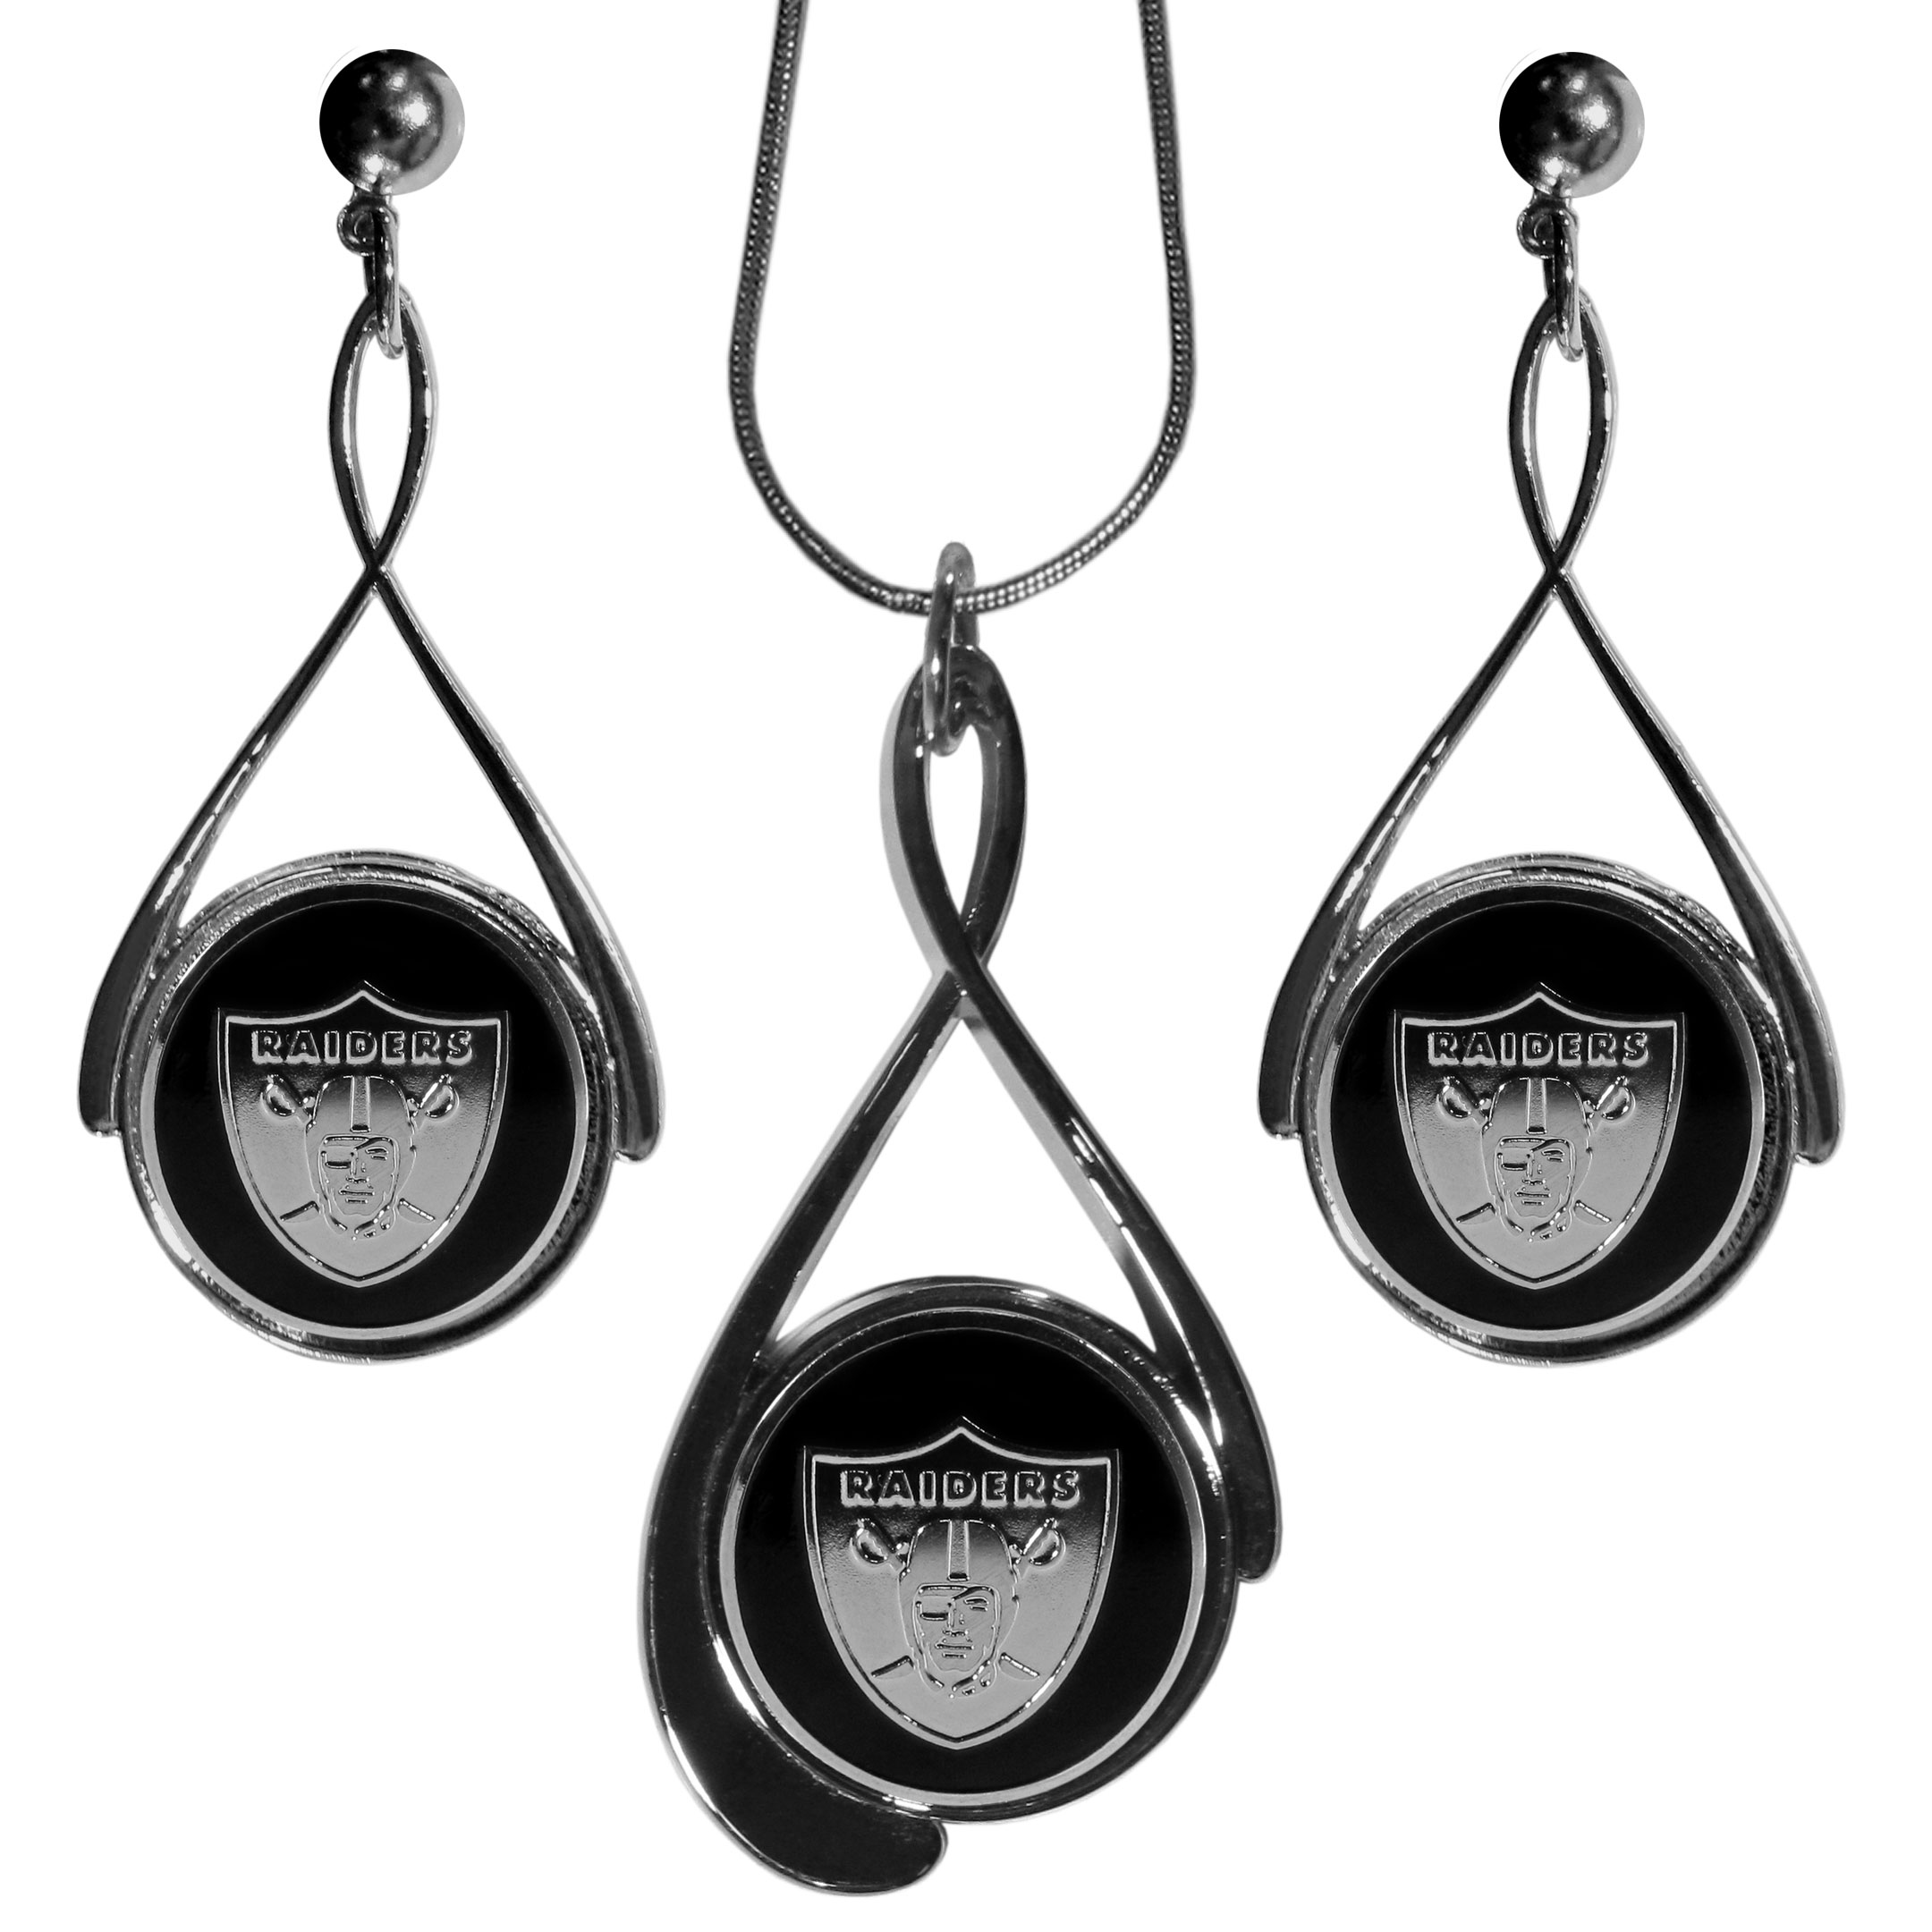 Oakland Raiders Tear Drop Jewelry Set - Our Oakland Raiders tear drop earrings and necklace set is a sporty twist on the classic tear drop style. The high polish dangle earrings feature the team logo in raised metal against the primary team color inset into the 2 inch tear drop setting paired with a beautiful matching necklace with a 18 inch snake chain with 2 inch extendor. The earrings have hypoallergenic stud posts.